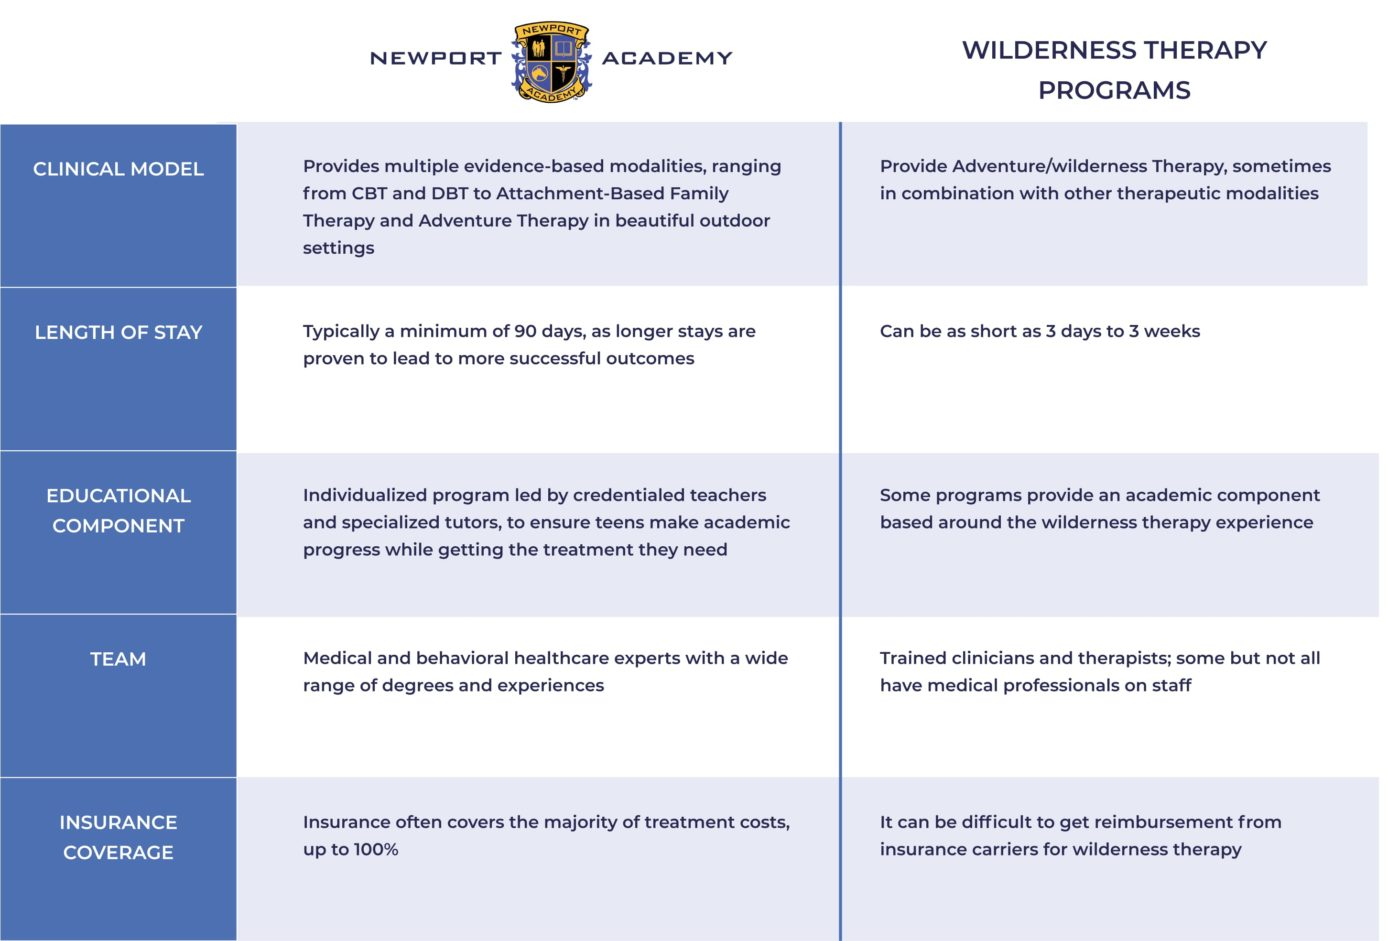 A chart comparing Newport Academy with typical Wilderness Therapy Programs. Row 1, Clinical Model: Newport Provides multiple evidence-based modalities, ranging from CBT and DBT to Attachment-Based Family Therapy and Adventure Therapy in beautiful outdoor settings. Wilderness programs Provide Adventure/wilderness Therapy, sometimes in combination with other therapeutic modalities. Row 2, Length of Stay. Newport Academy: Typically a minimum of 90 days, as longer stays are proven to lead to more successful outcomes. Wilderness programs Can be as short as 3 days to 3 weeks. Row 3 Educational Component. Newport: Individualized program led by credentialed teachers and specialized tutors, to ensure teens make academic progress while getting the treatment they need, Wilderness programs: Some programs provide an academic component based around the wilderness therapy experience. Row 4, Team. Newport: Medical and behavioral healthcare experts with a wide range of degrees and experiences. Wilderness programs: Trained clinicians and therapists; some but not all have medical professionals on staff. Row 5: Insurance Coverage. Newport: Insurance often covers the majority of treatment costs, up to 100%. Wilderness programs: It can be difficult to get reimbursement from insurance carriers for wilderness therapy.